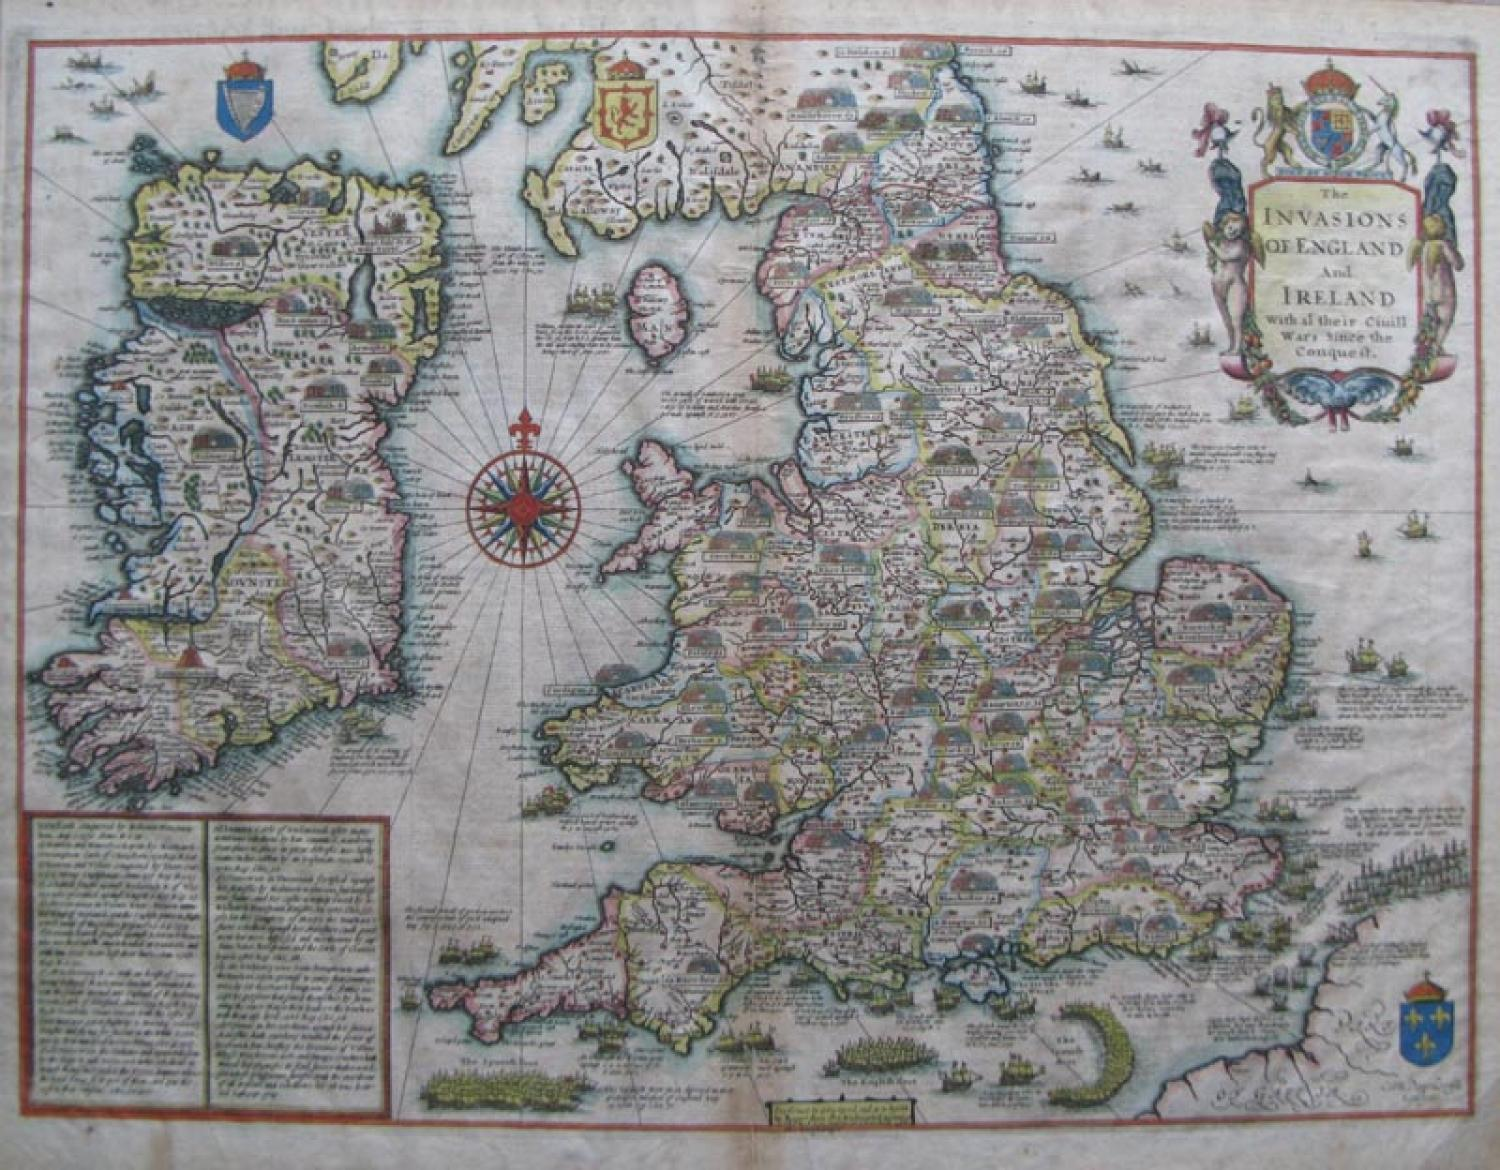 SOLD The Invasions of England and Ireland